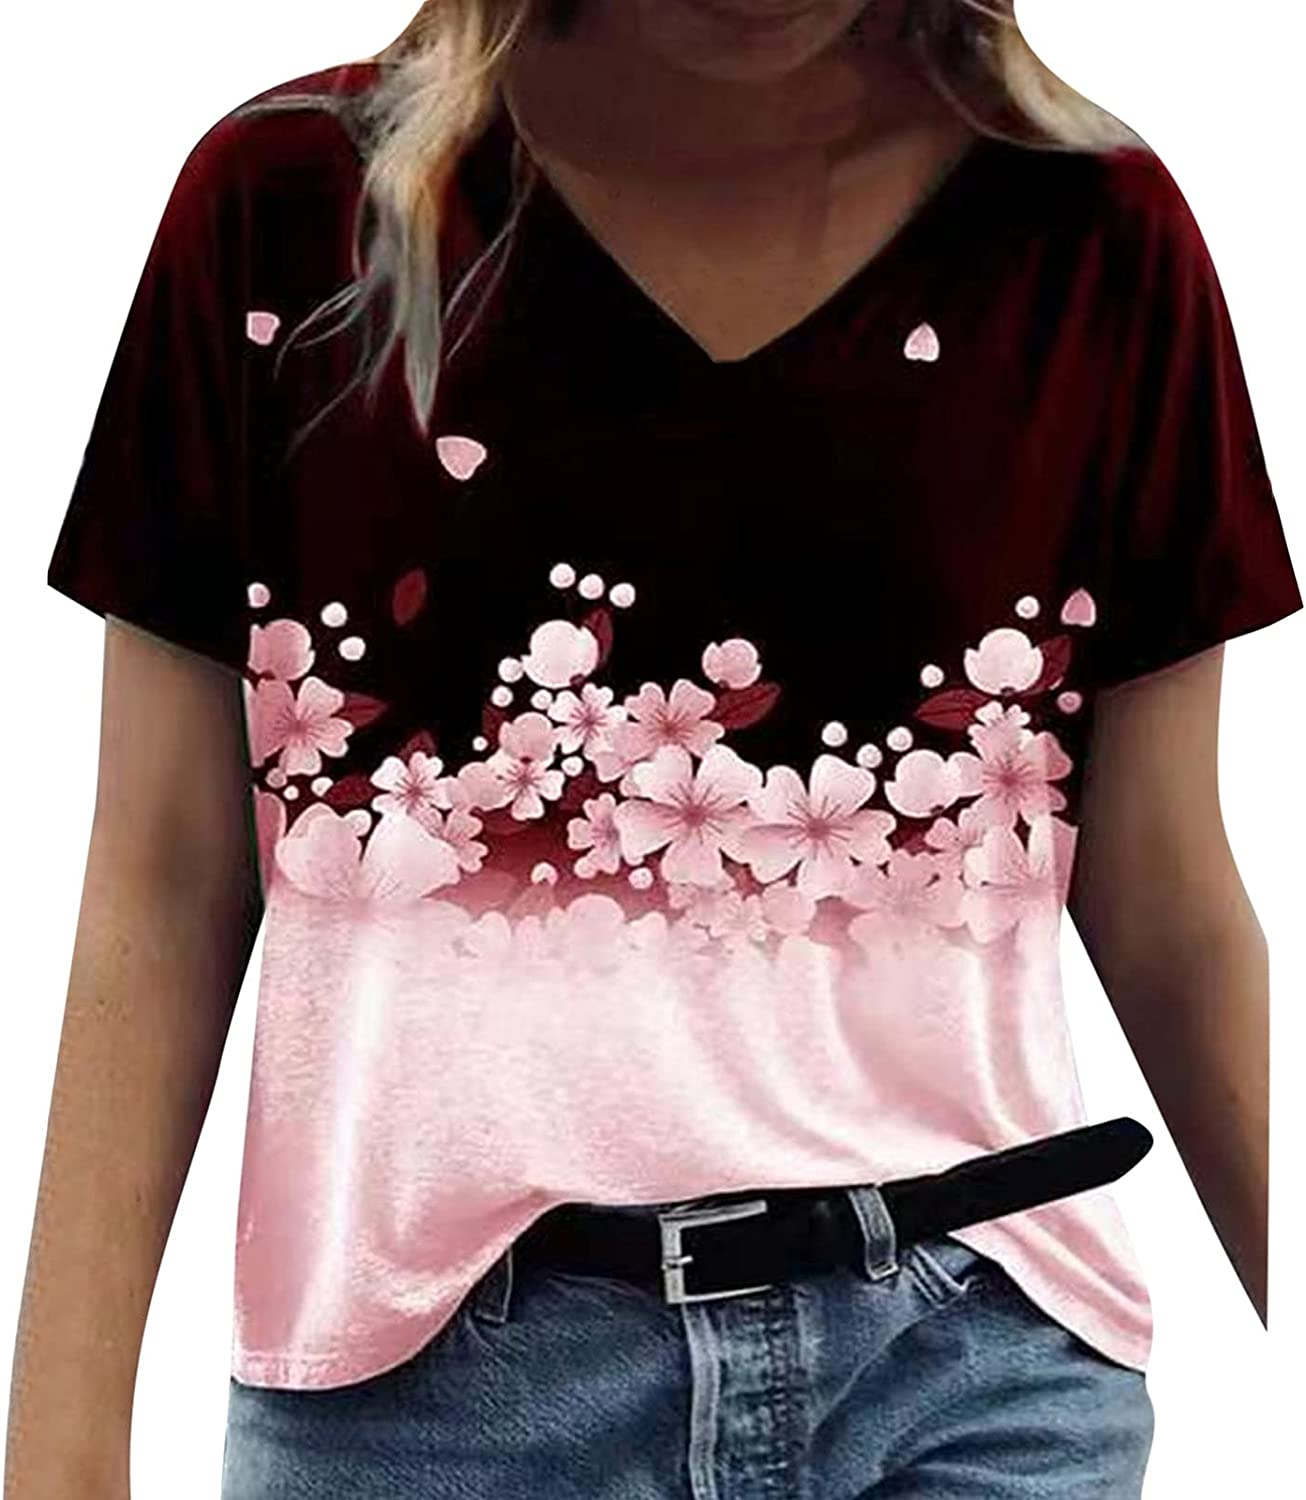 Max 46% OFF Summer Tops for Women Graphic T- Short Prints Sleeve V-Neck Limited time trial price